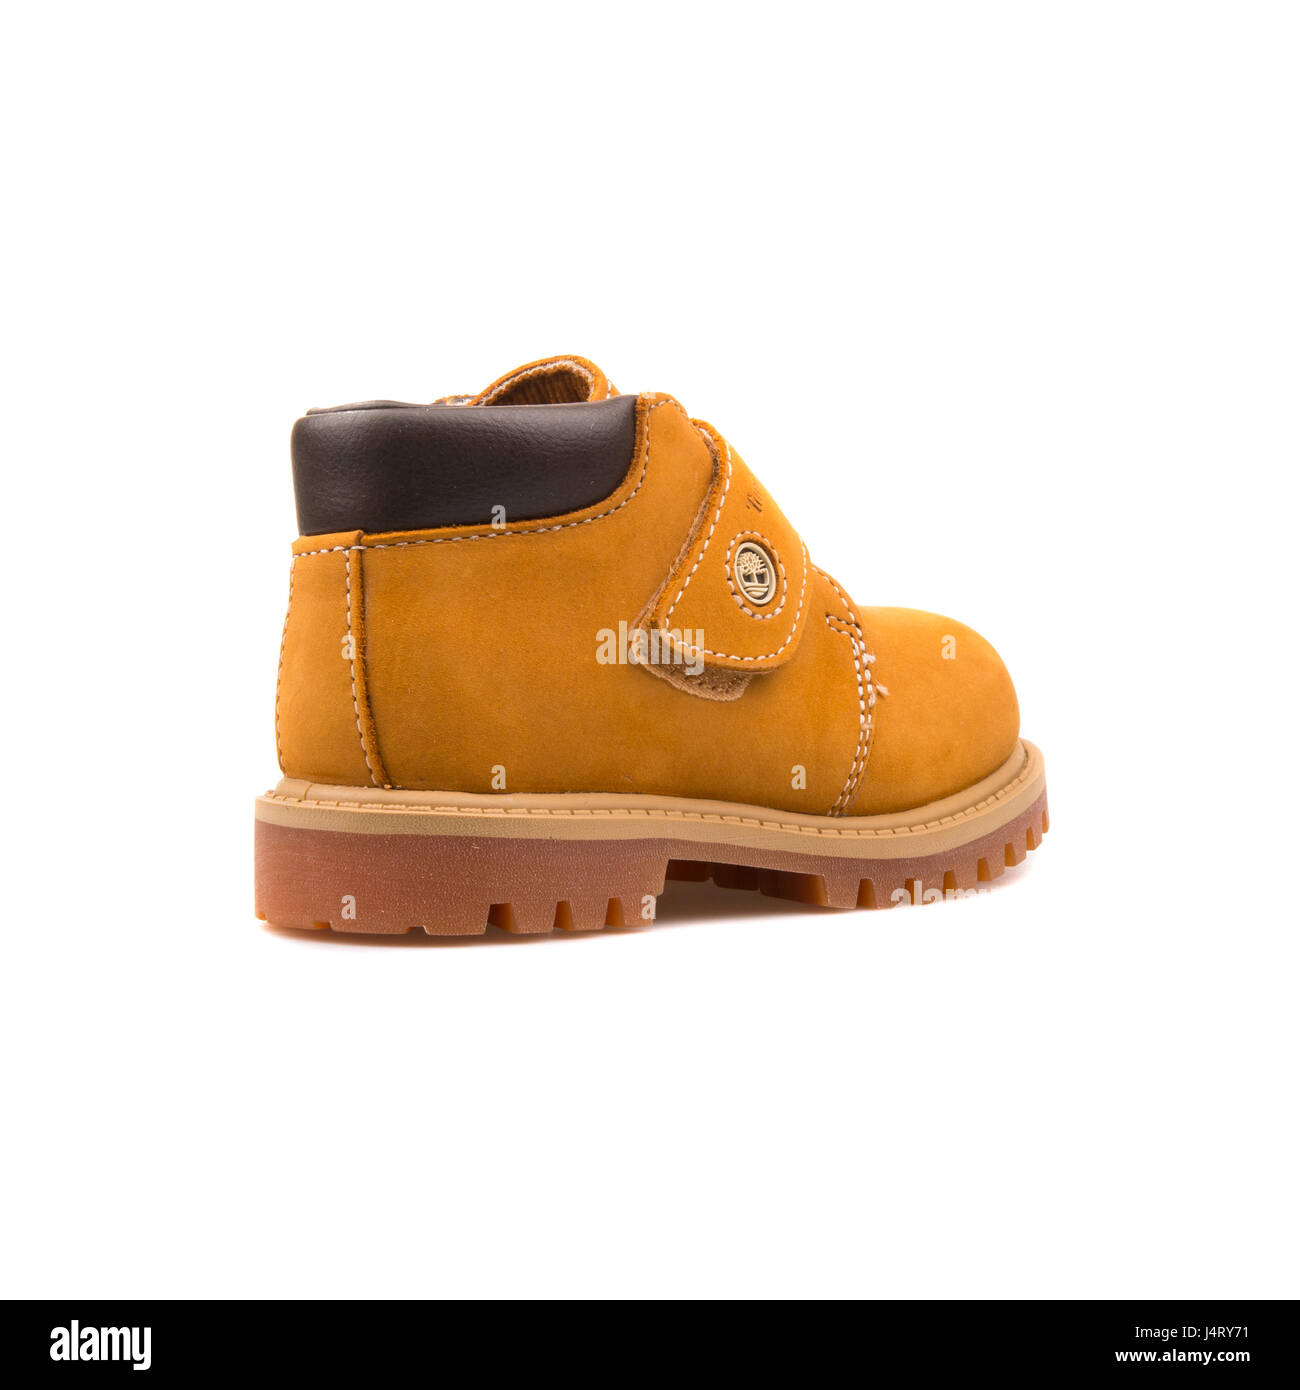 Timberland WP Chukka Hoop and Loop Wheat Toddlers Boots - 12853 - Stock Image